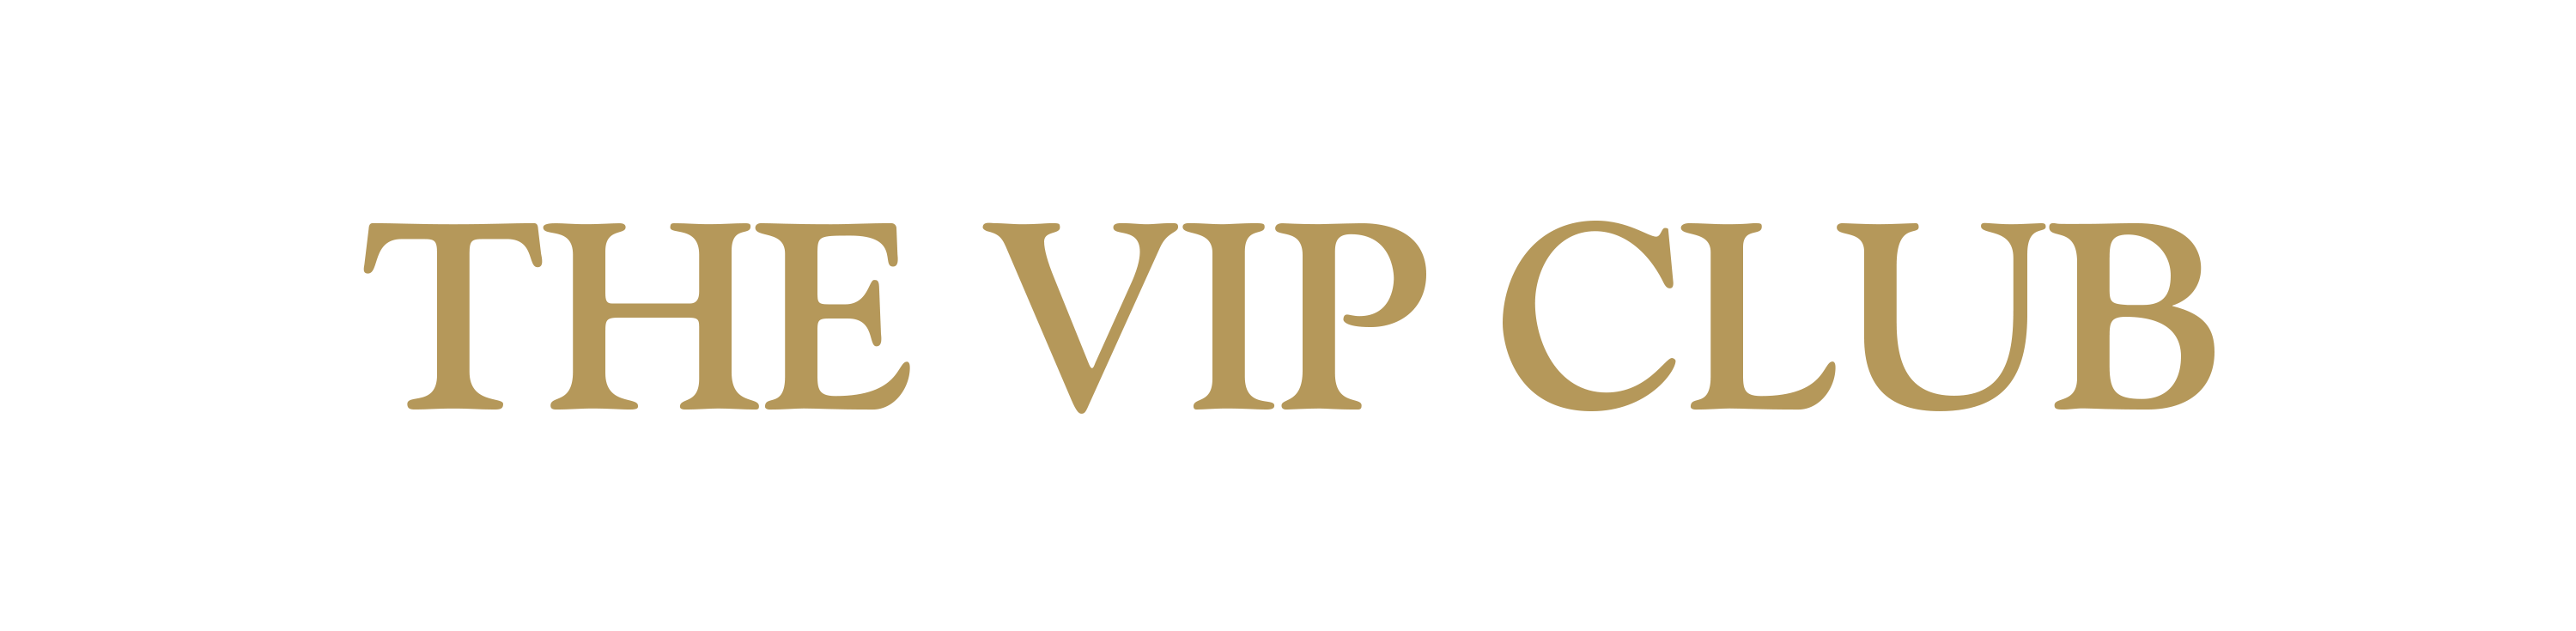 The VIP Club World